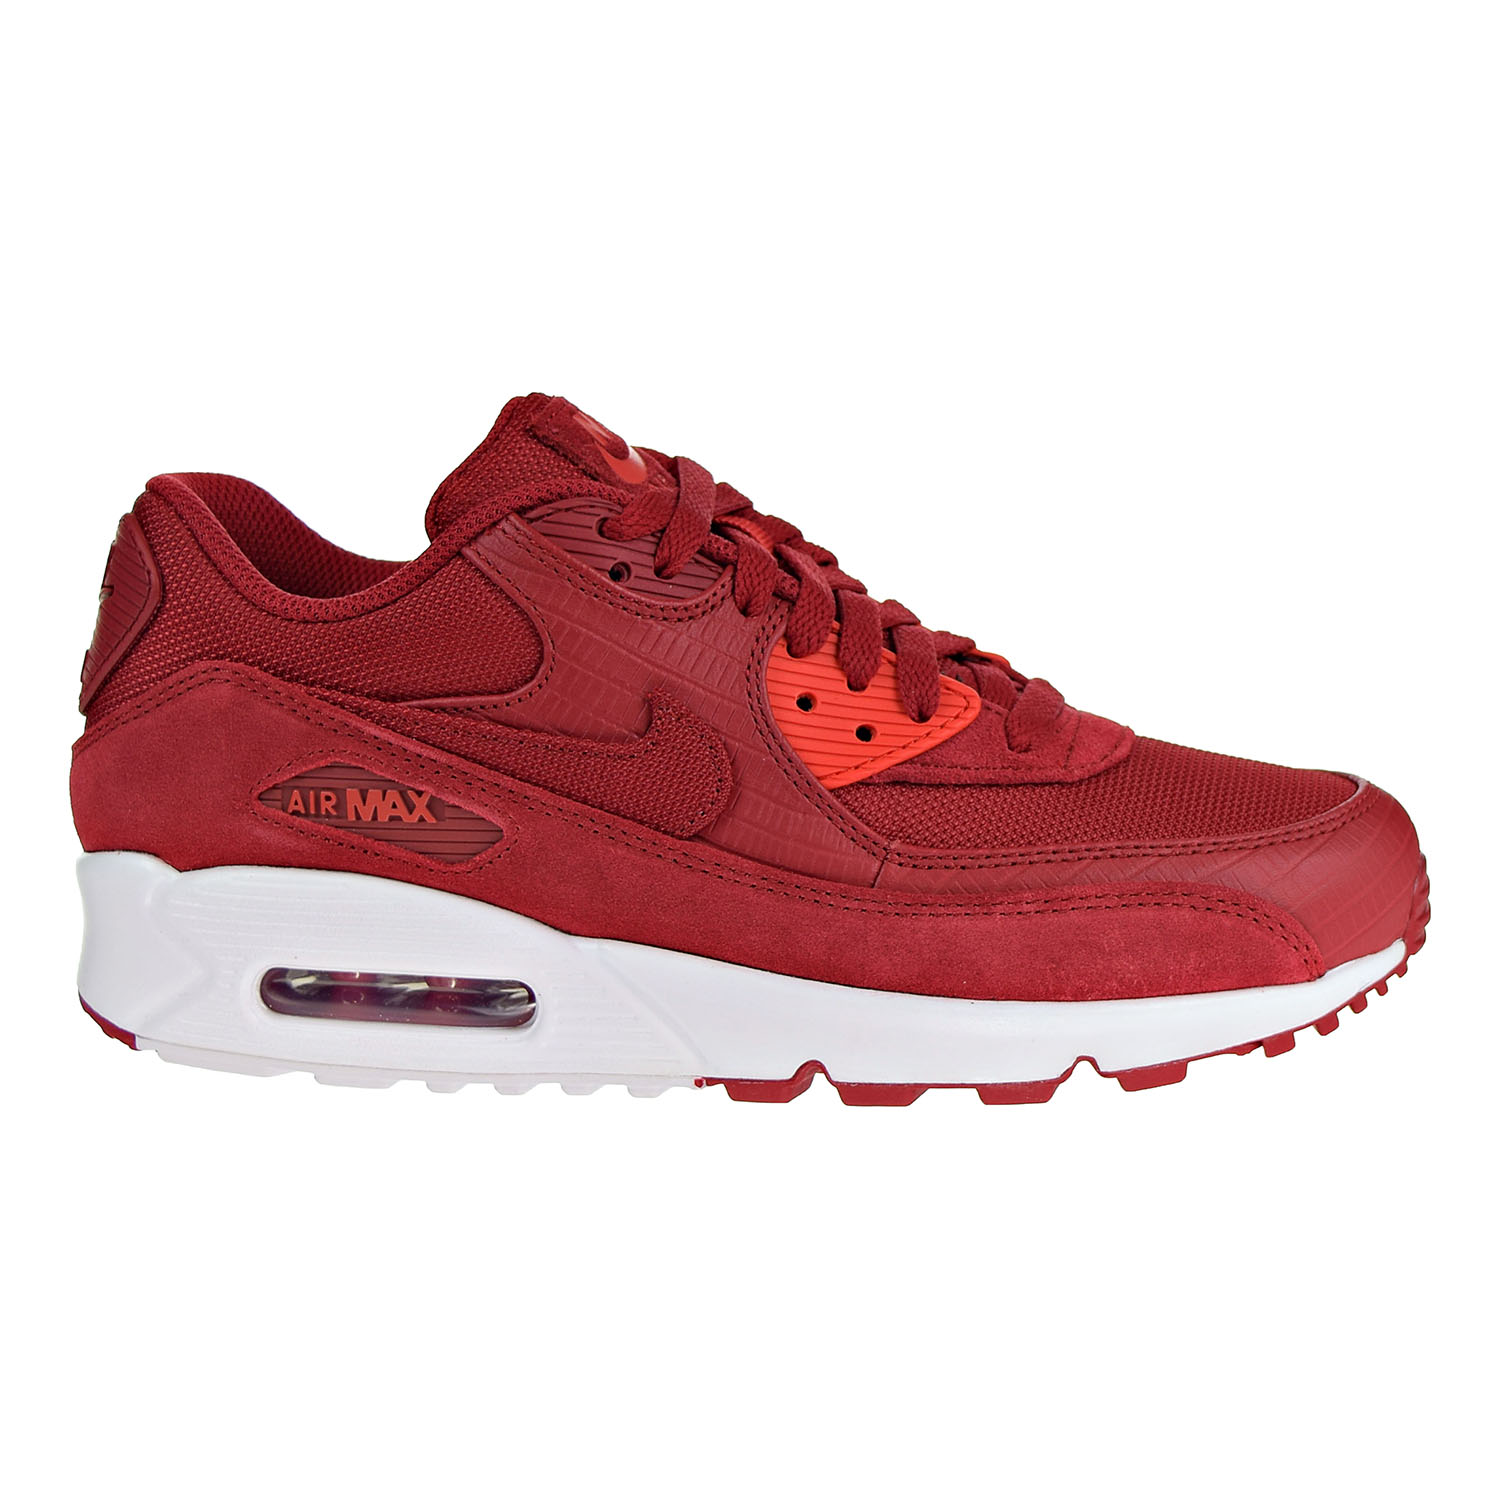 Details about Nike Air Max 90 Premium Mens Shoes Gym Red Gym Red White 700155 602